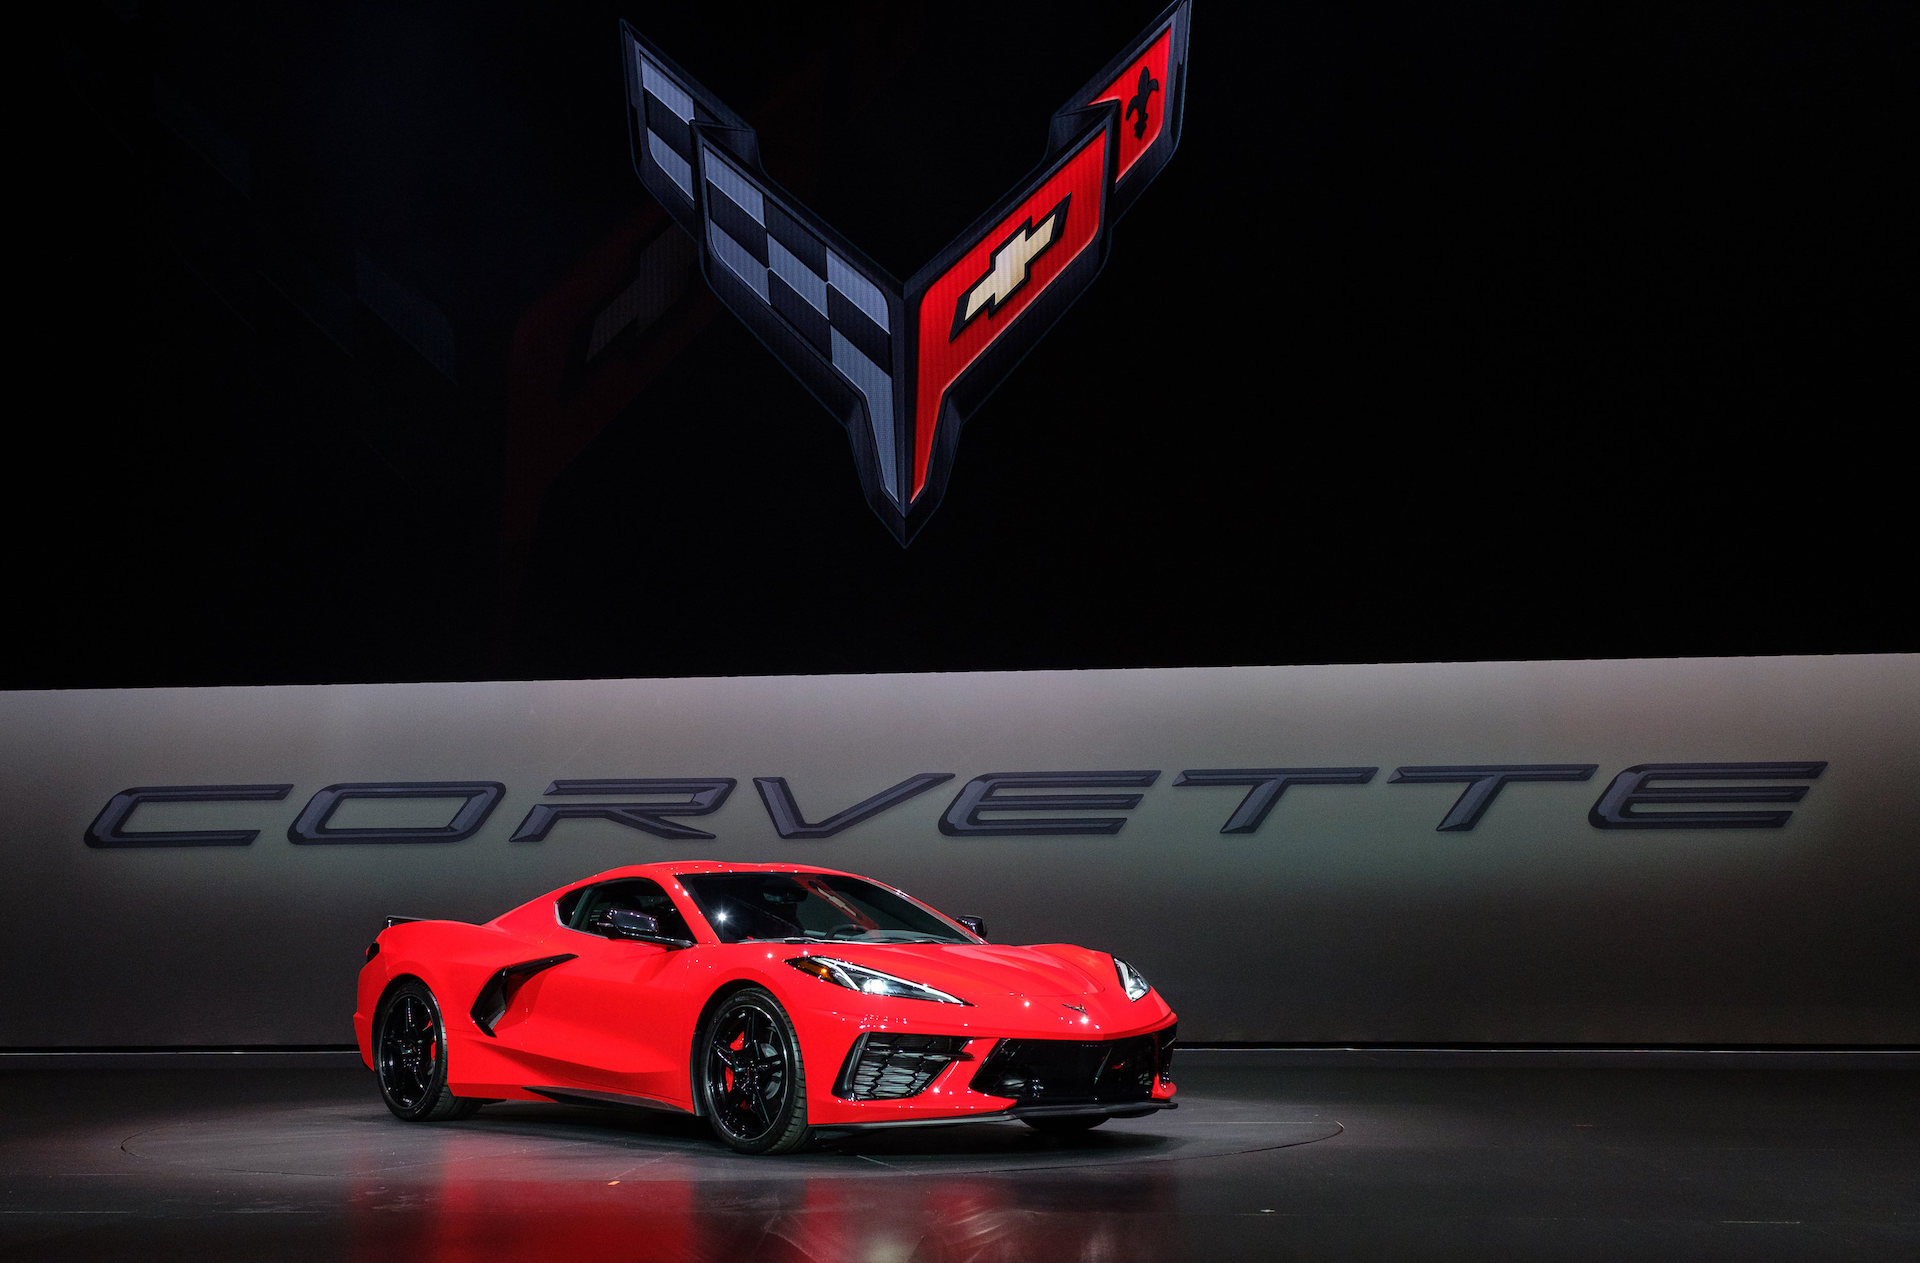 New Supercars 2020 New 2020 Corvette has a trick to rev at stoplights, if owning mid